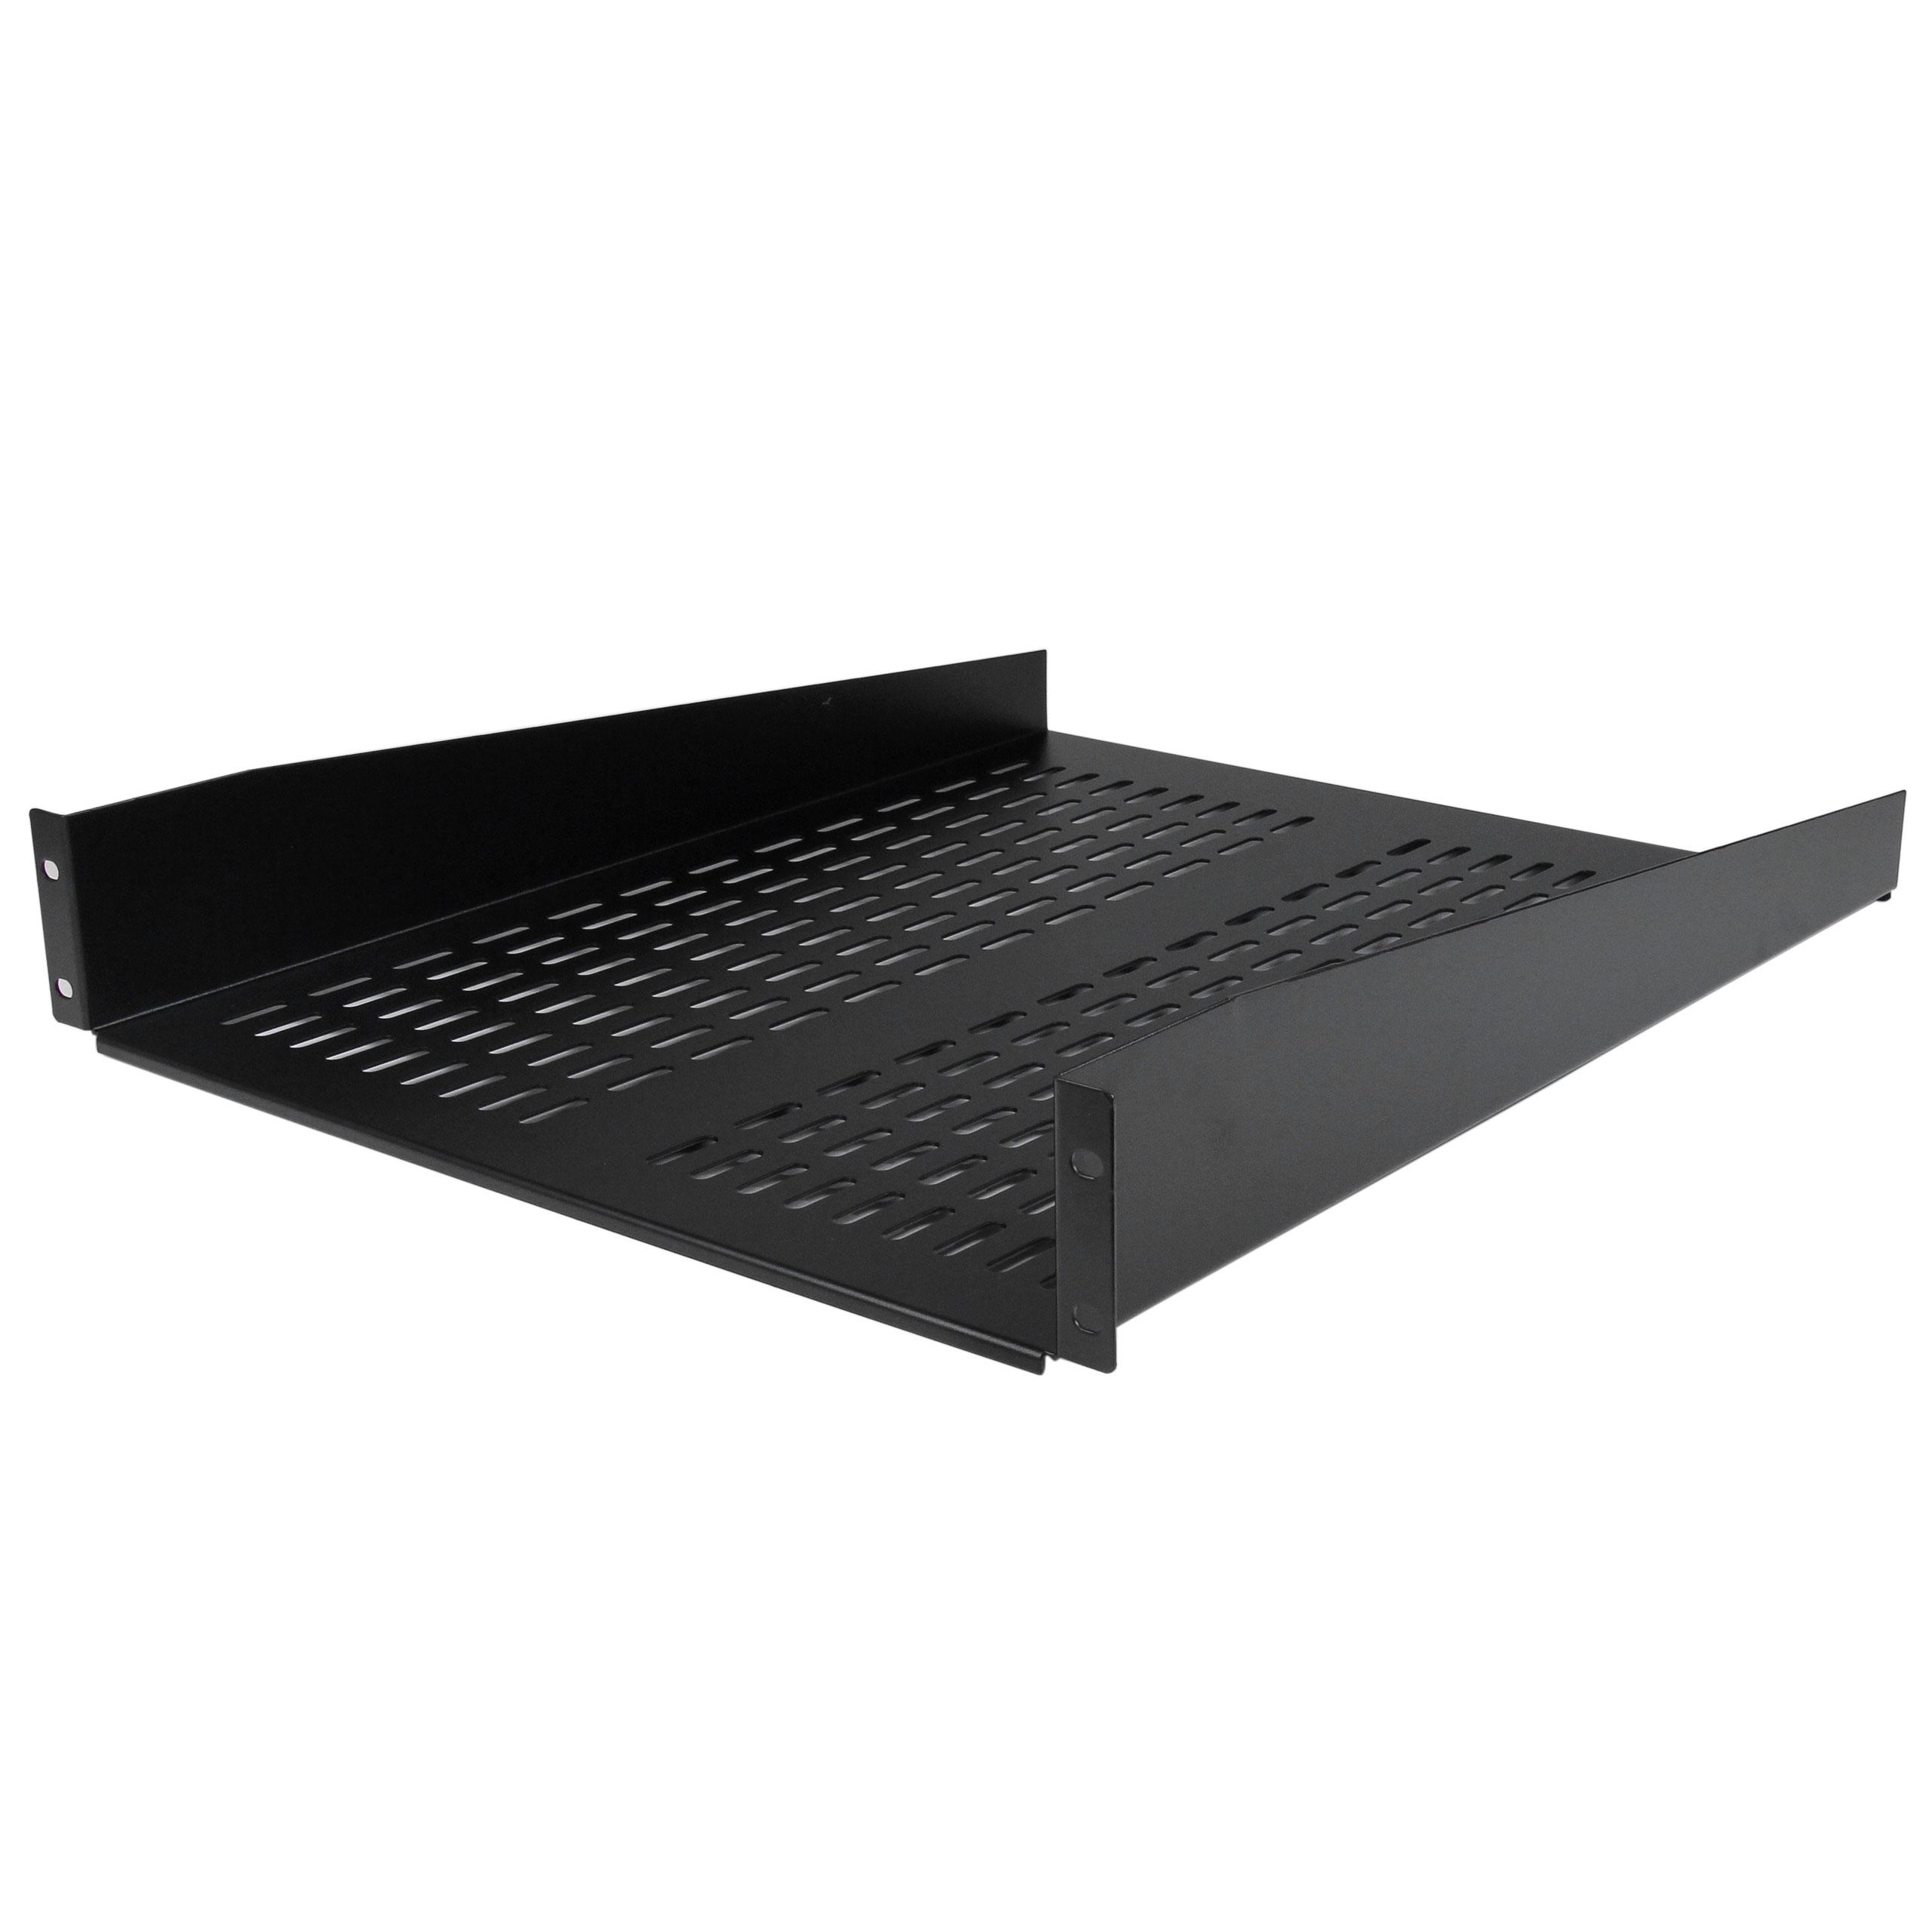 rackmount part phone product line inch deep network rack shelf value products number